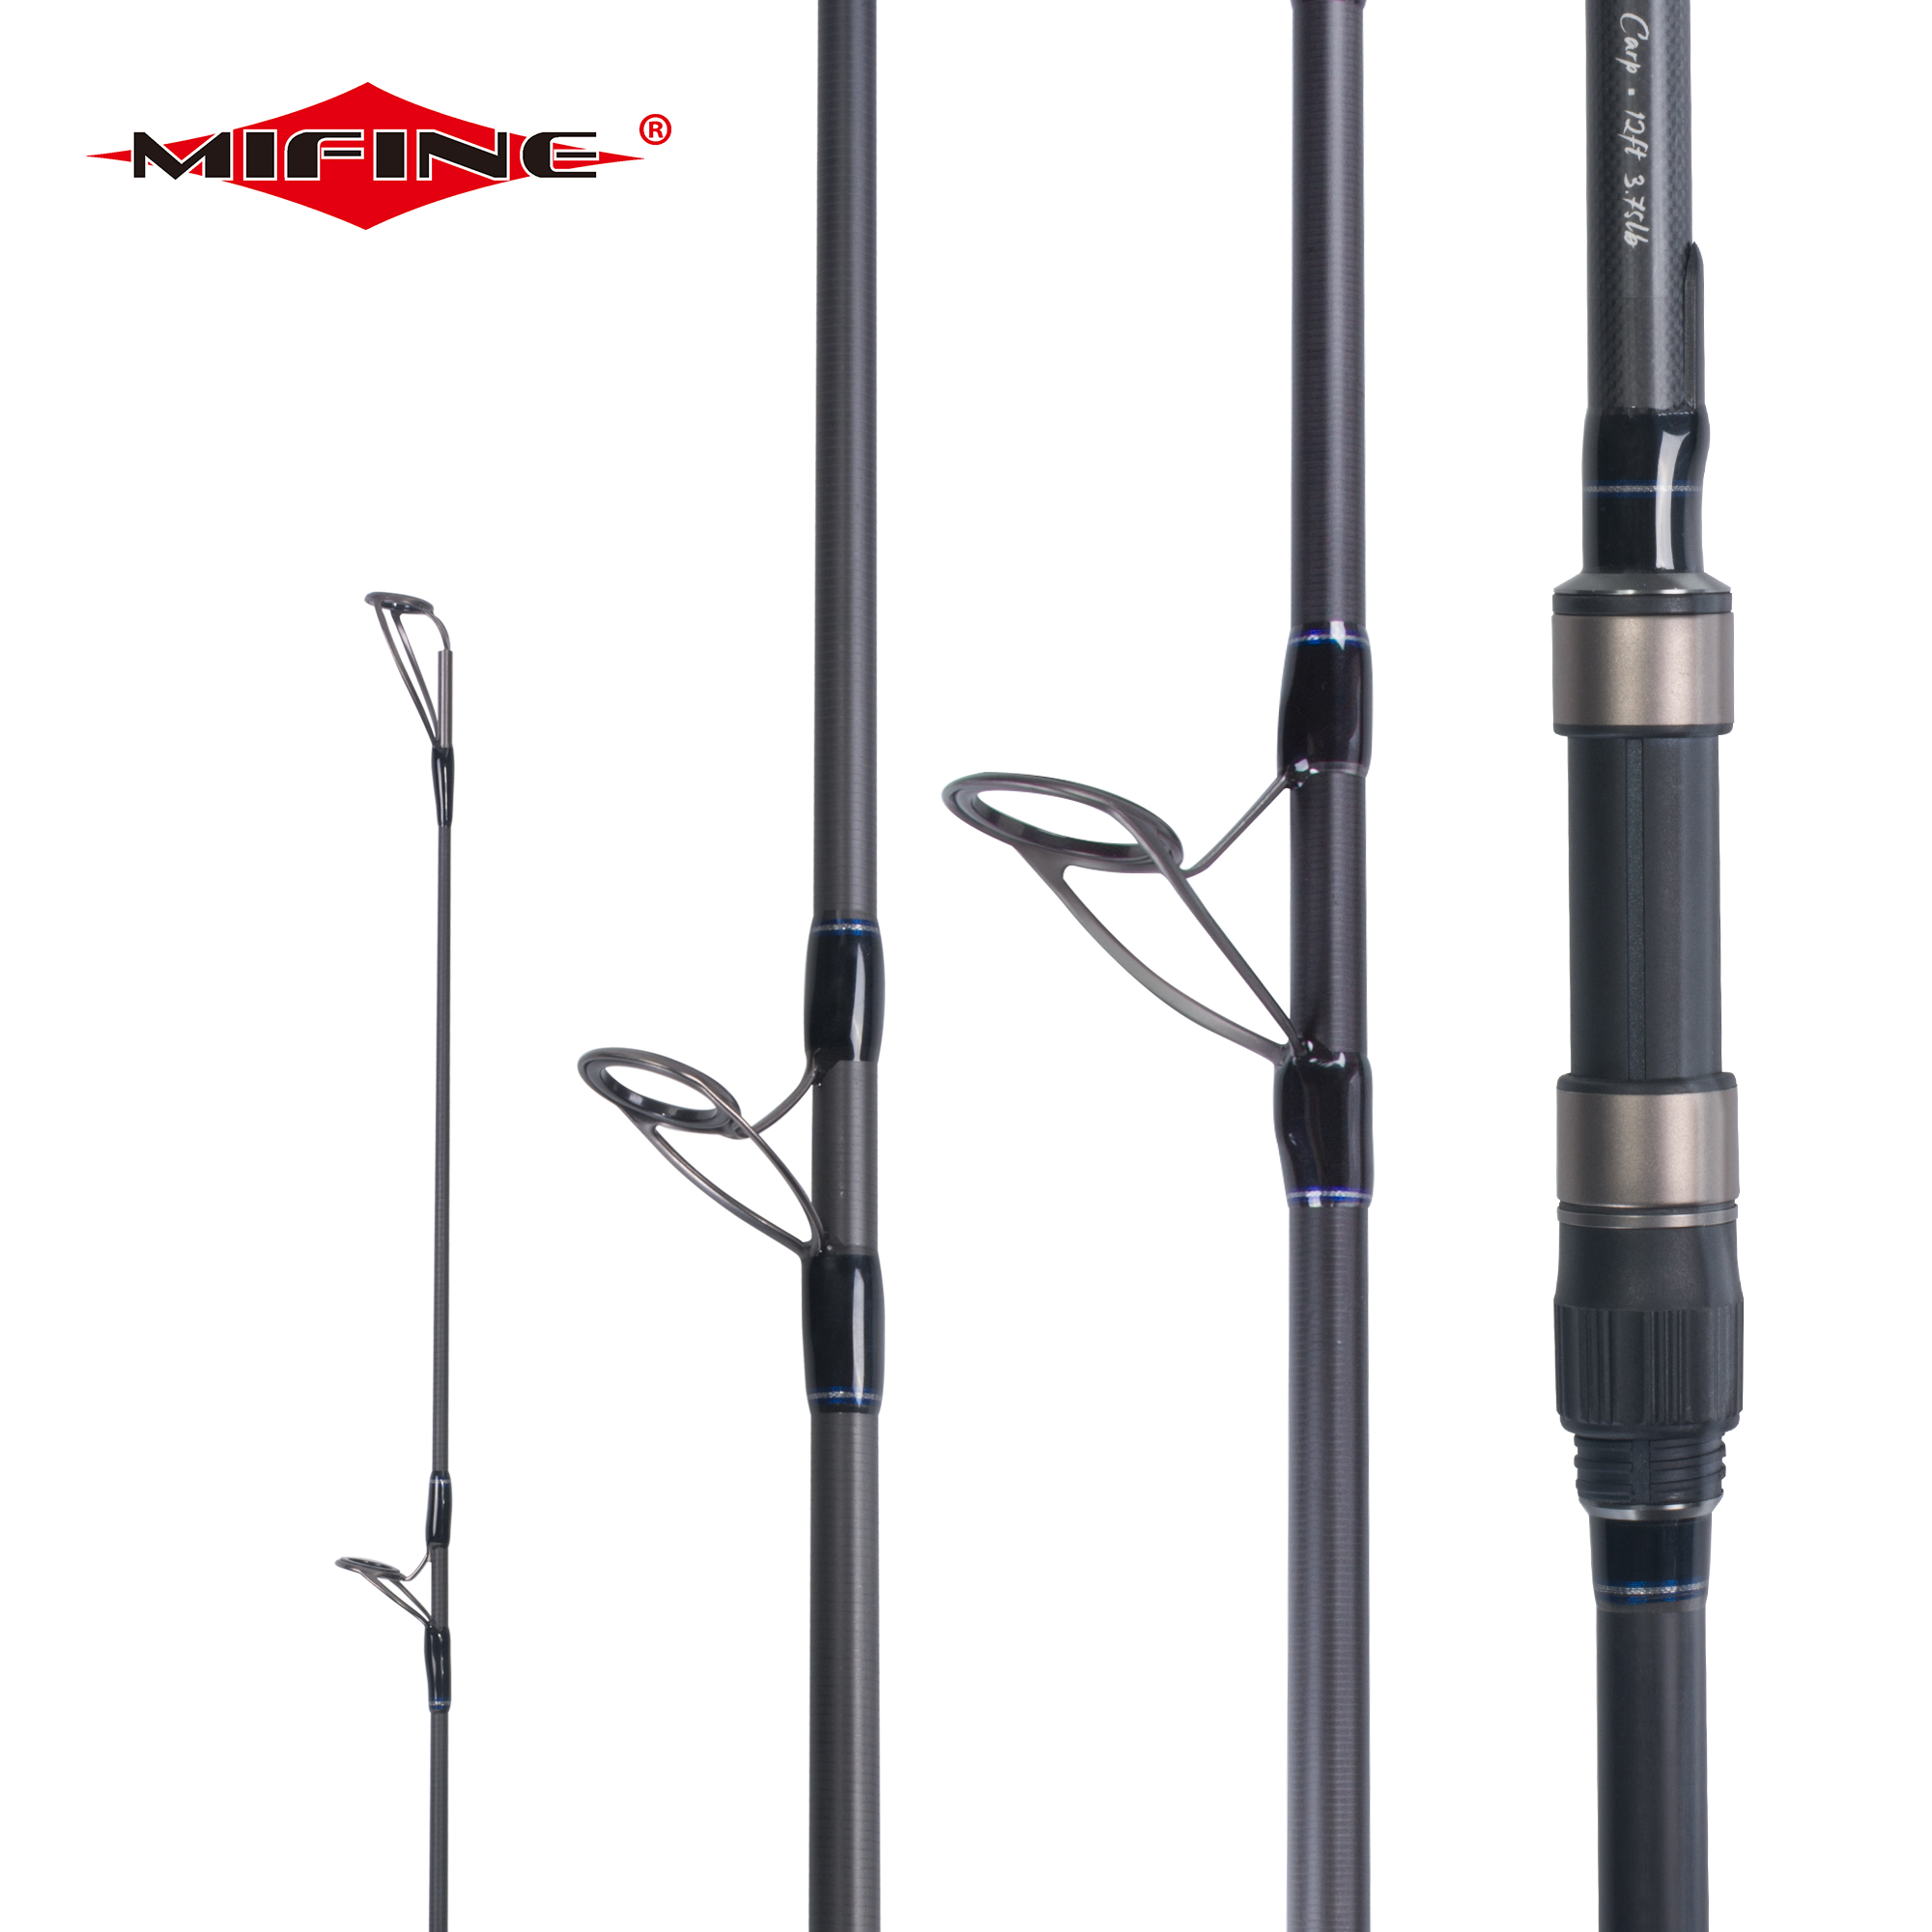 MIFINE BUDEFO CARP fishing rod 3.25/3.75/4.25LBS 3.6/3.9M High Carbon Spinning rod Hard Pole Surf Rod Throwing shot 80-160M title=